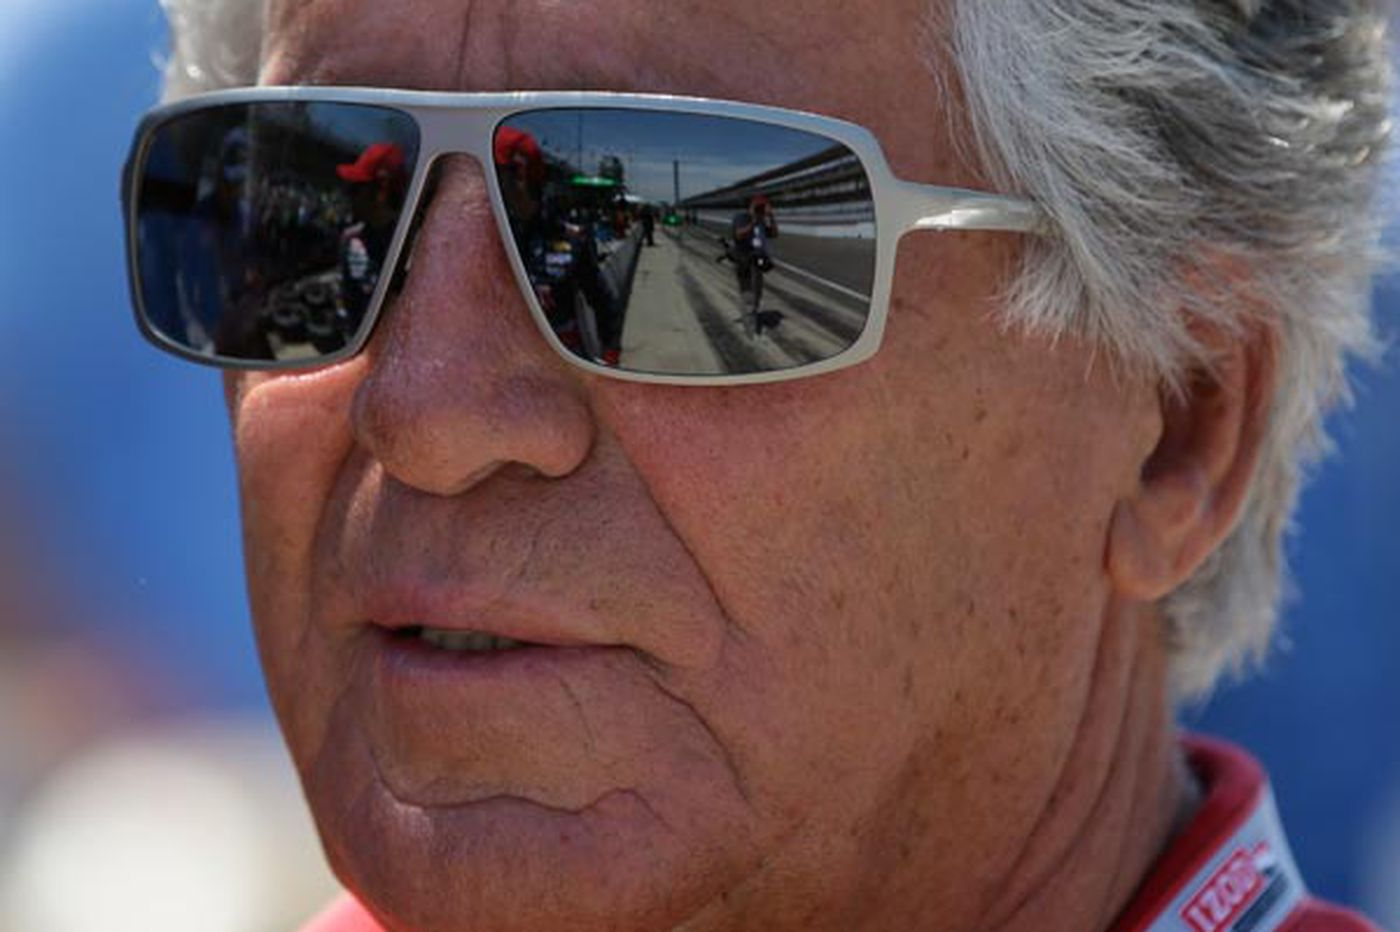 Andretti heads into Indy 500 trying to shake curse